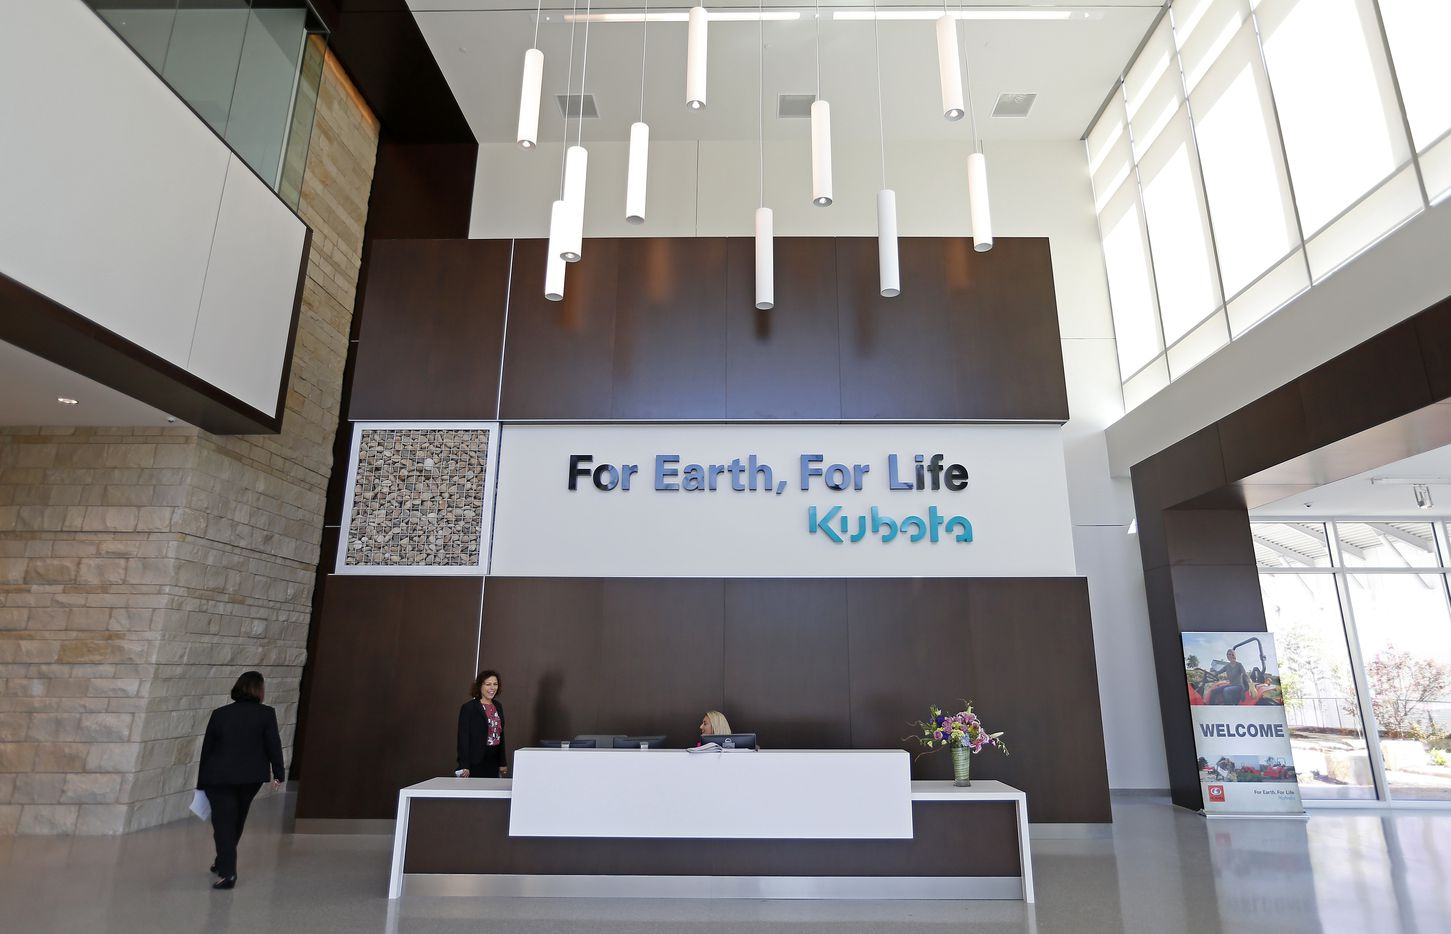 The lobby of the new Kubota Tractor Corp. headquarters in Grapevine.